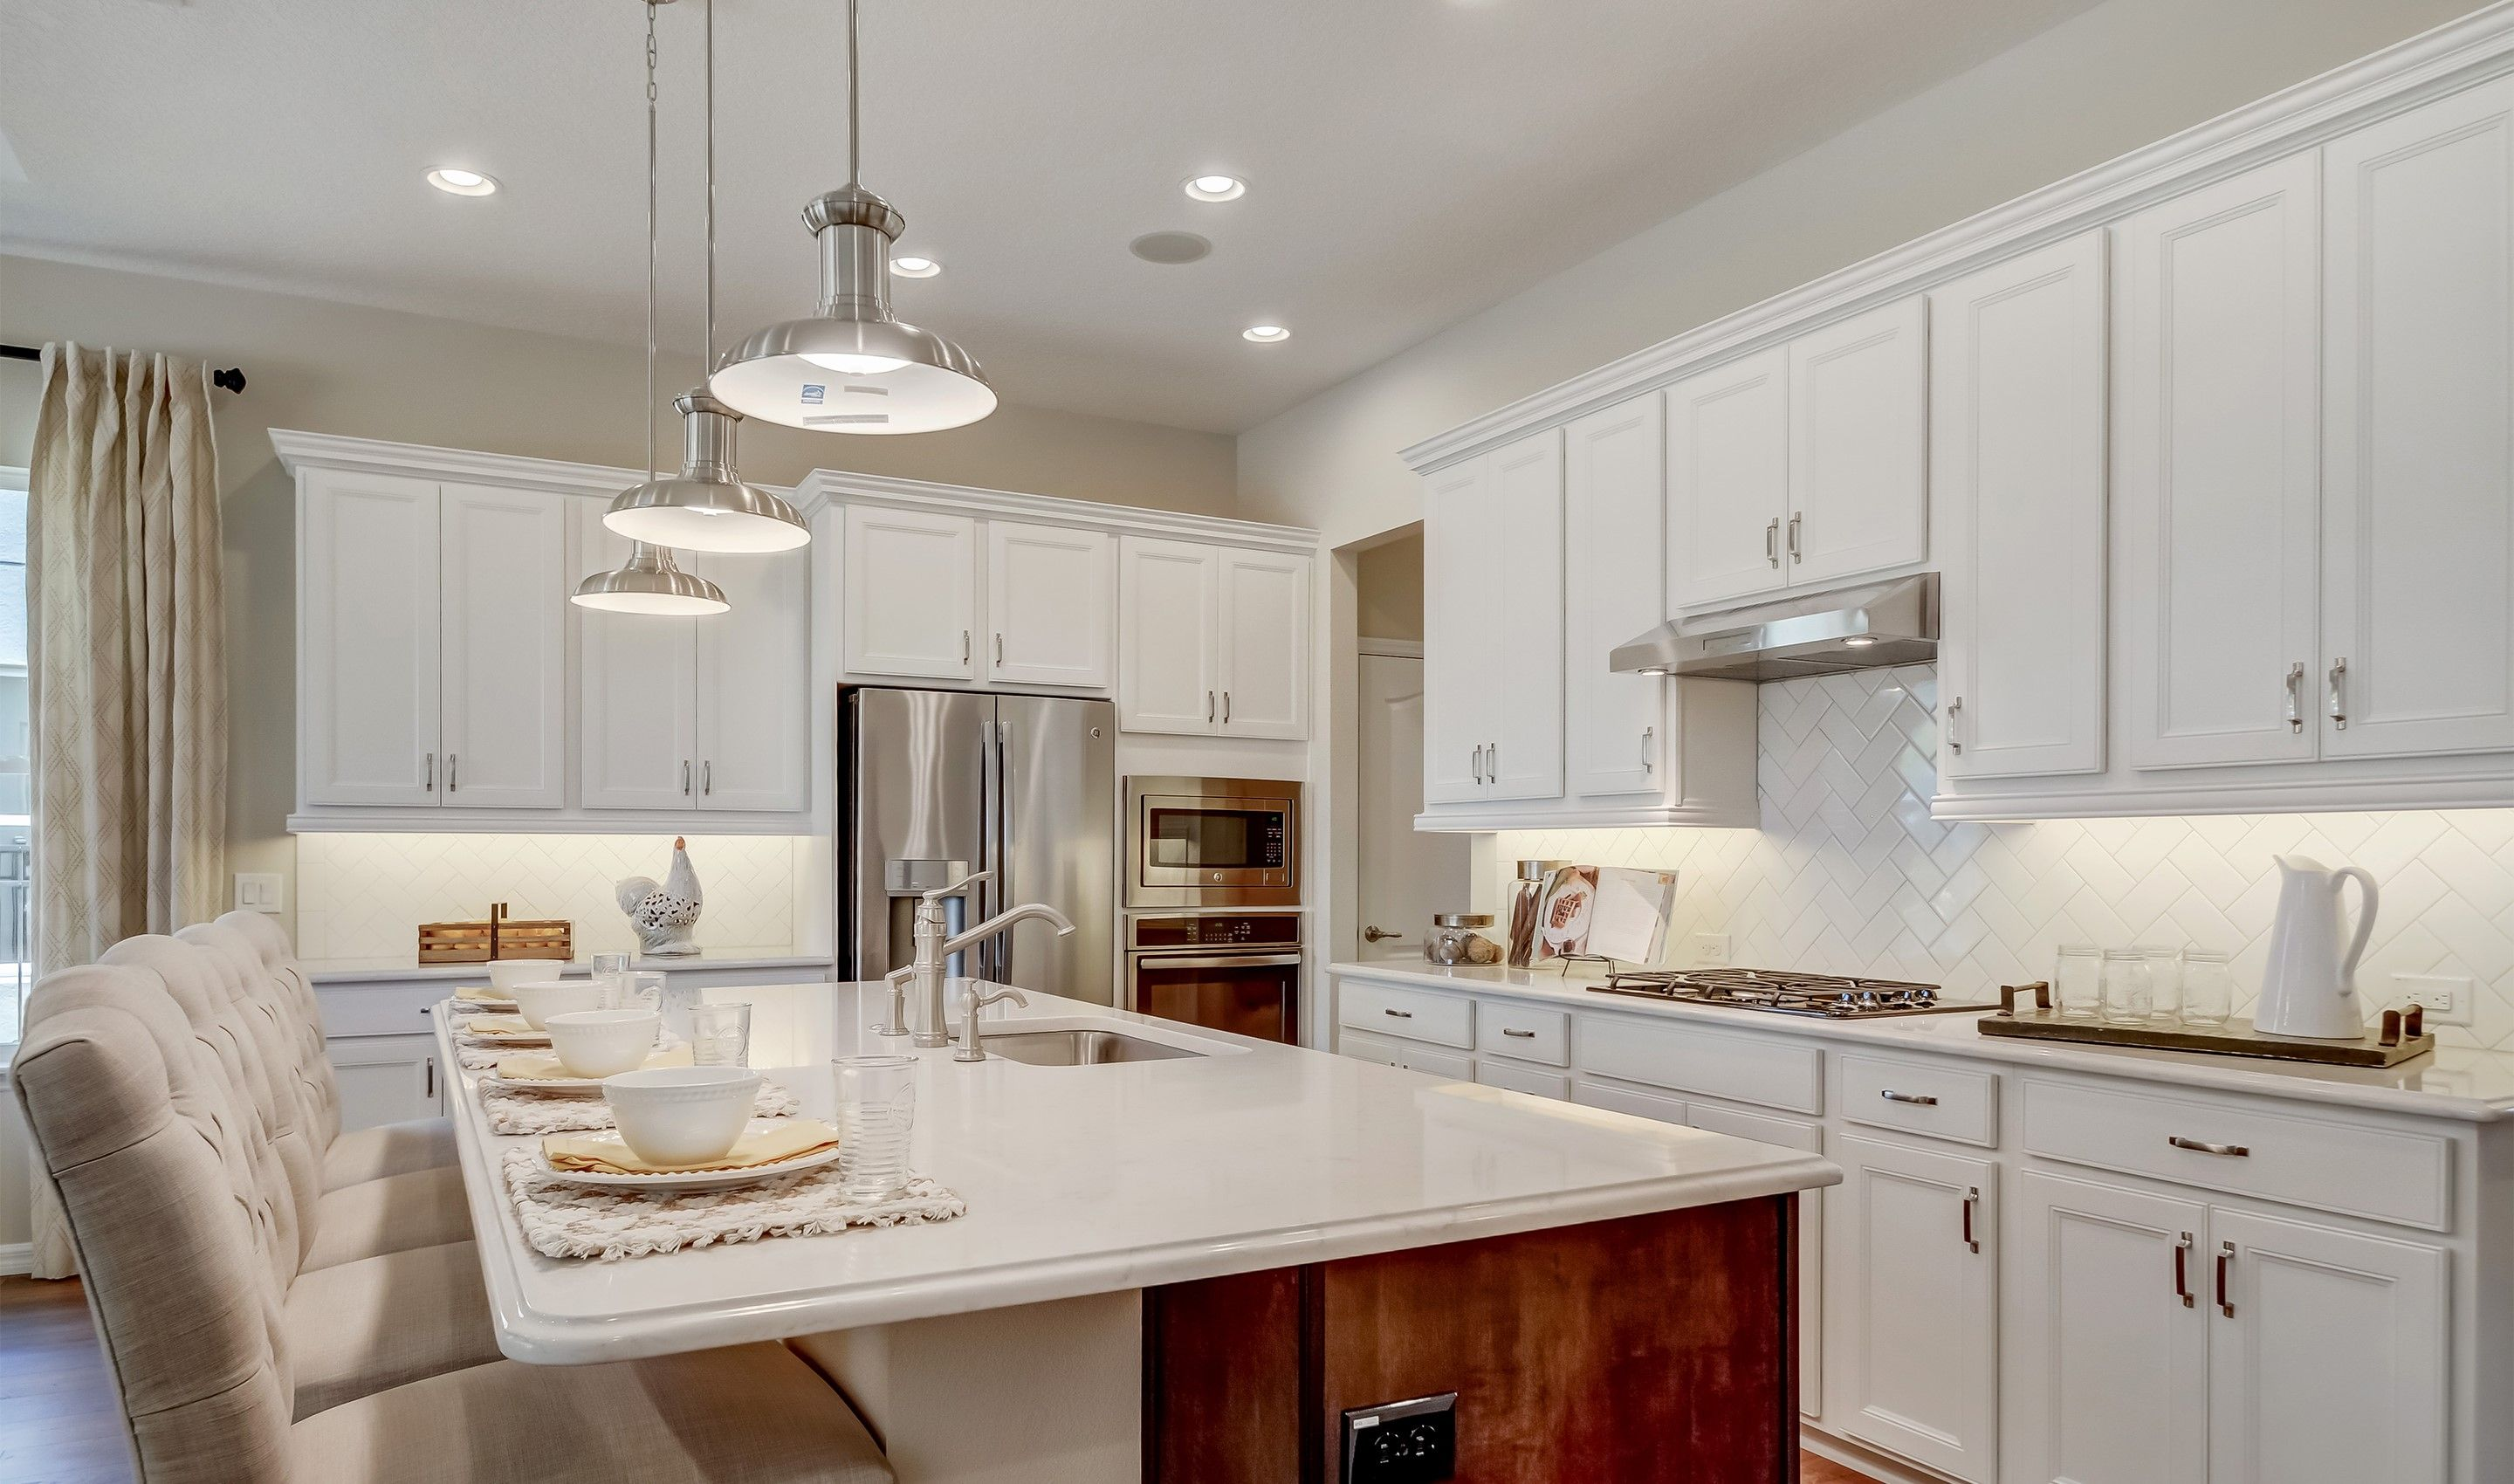 Kitchen featured in the Balfour By K. Hovnanian's® Four Seasons in Orlando, FL